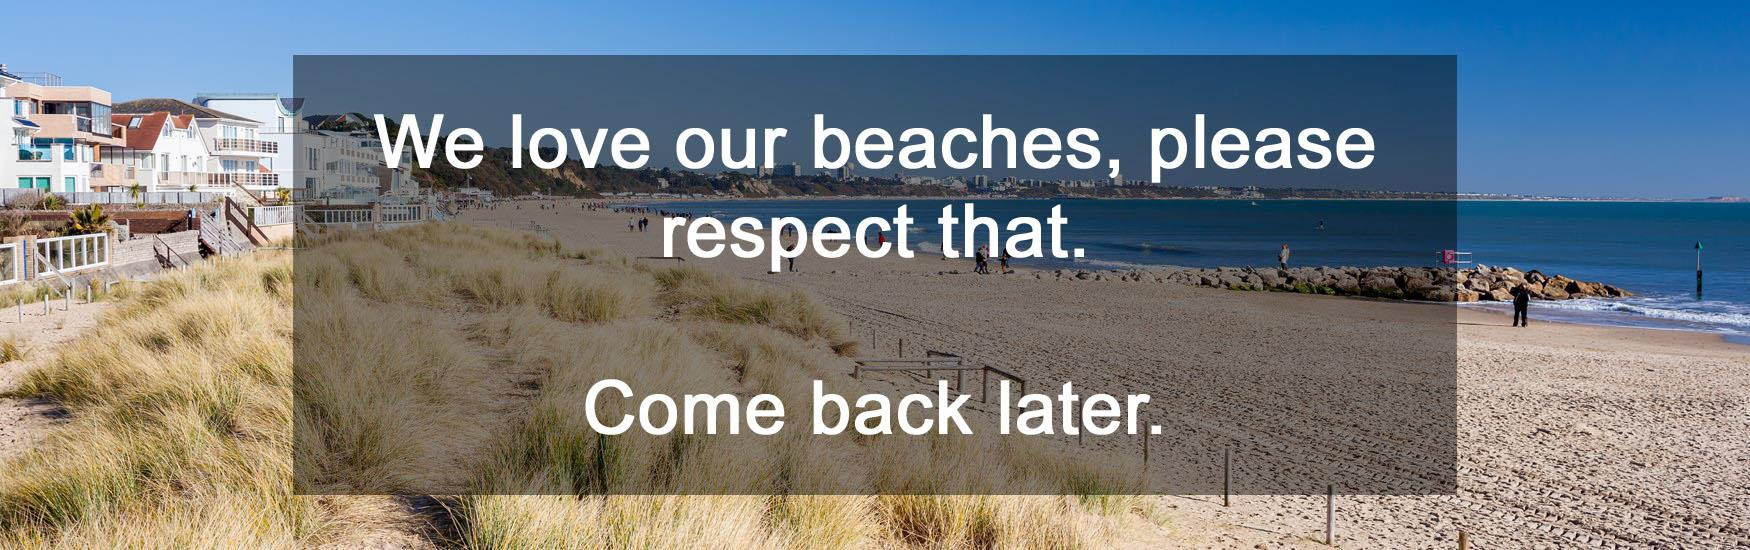 Landscape view of Sandbanks Beach blocked by black text box containing message: 'We love our beaches, please respect that. Come Back Later.'